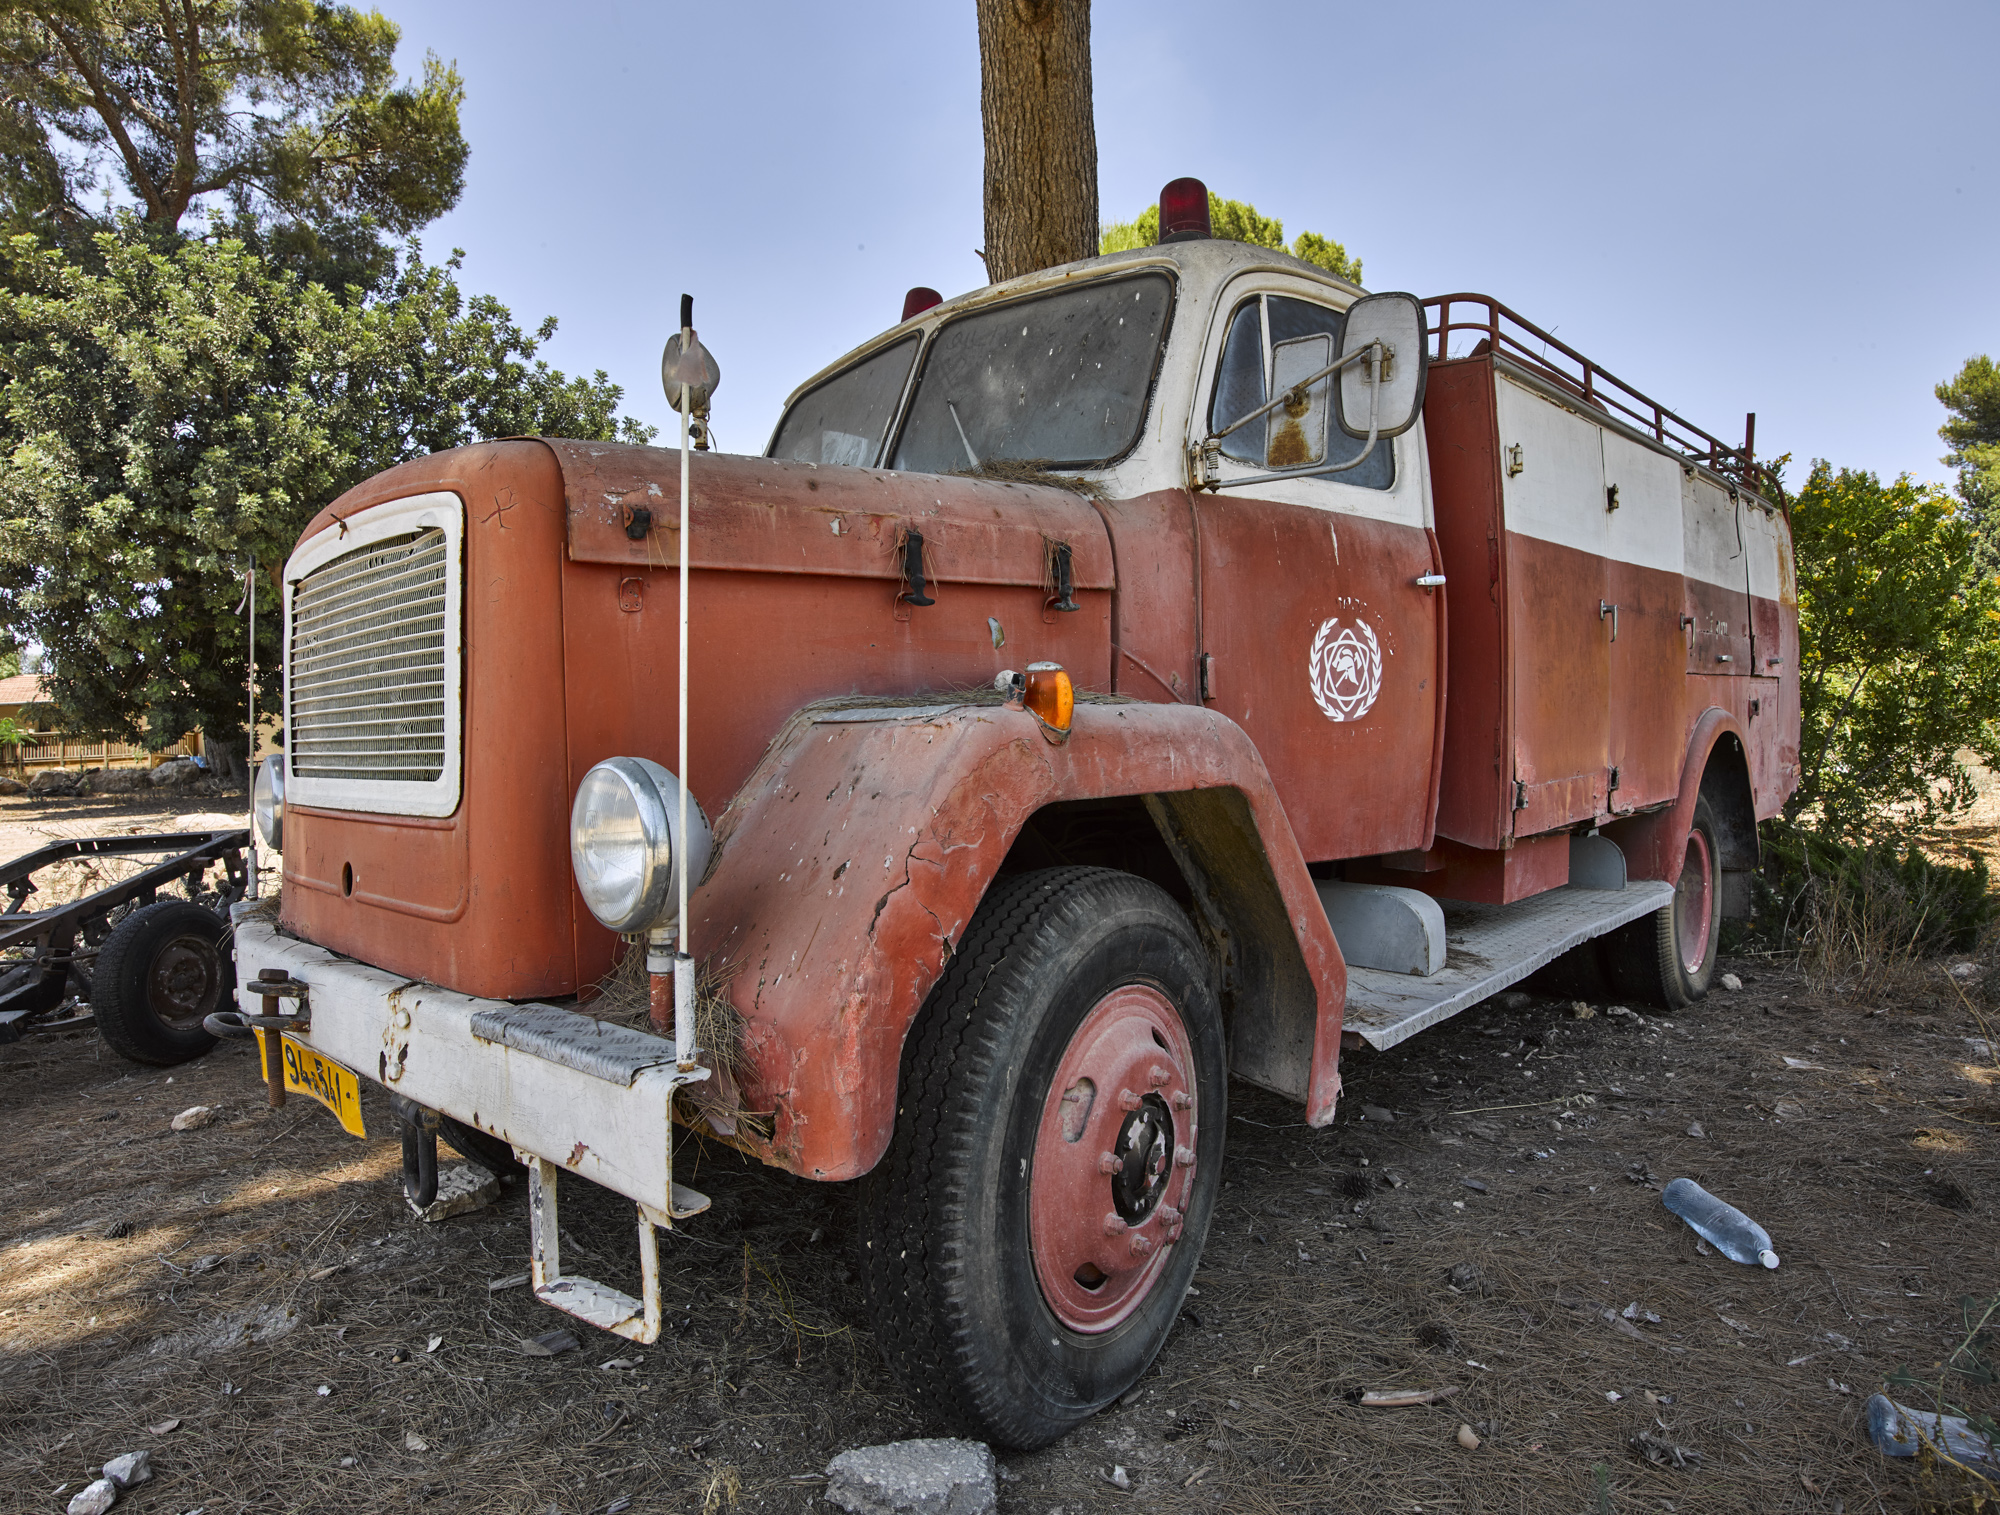 Fire Truck - Bet Govrin, August 2016